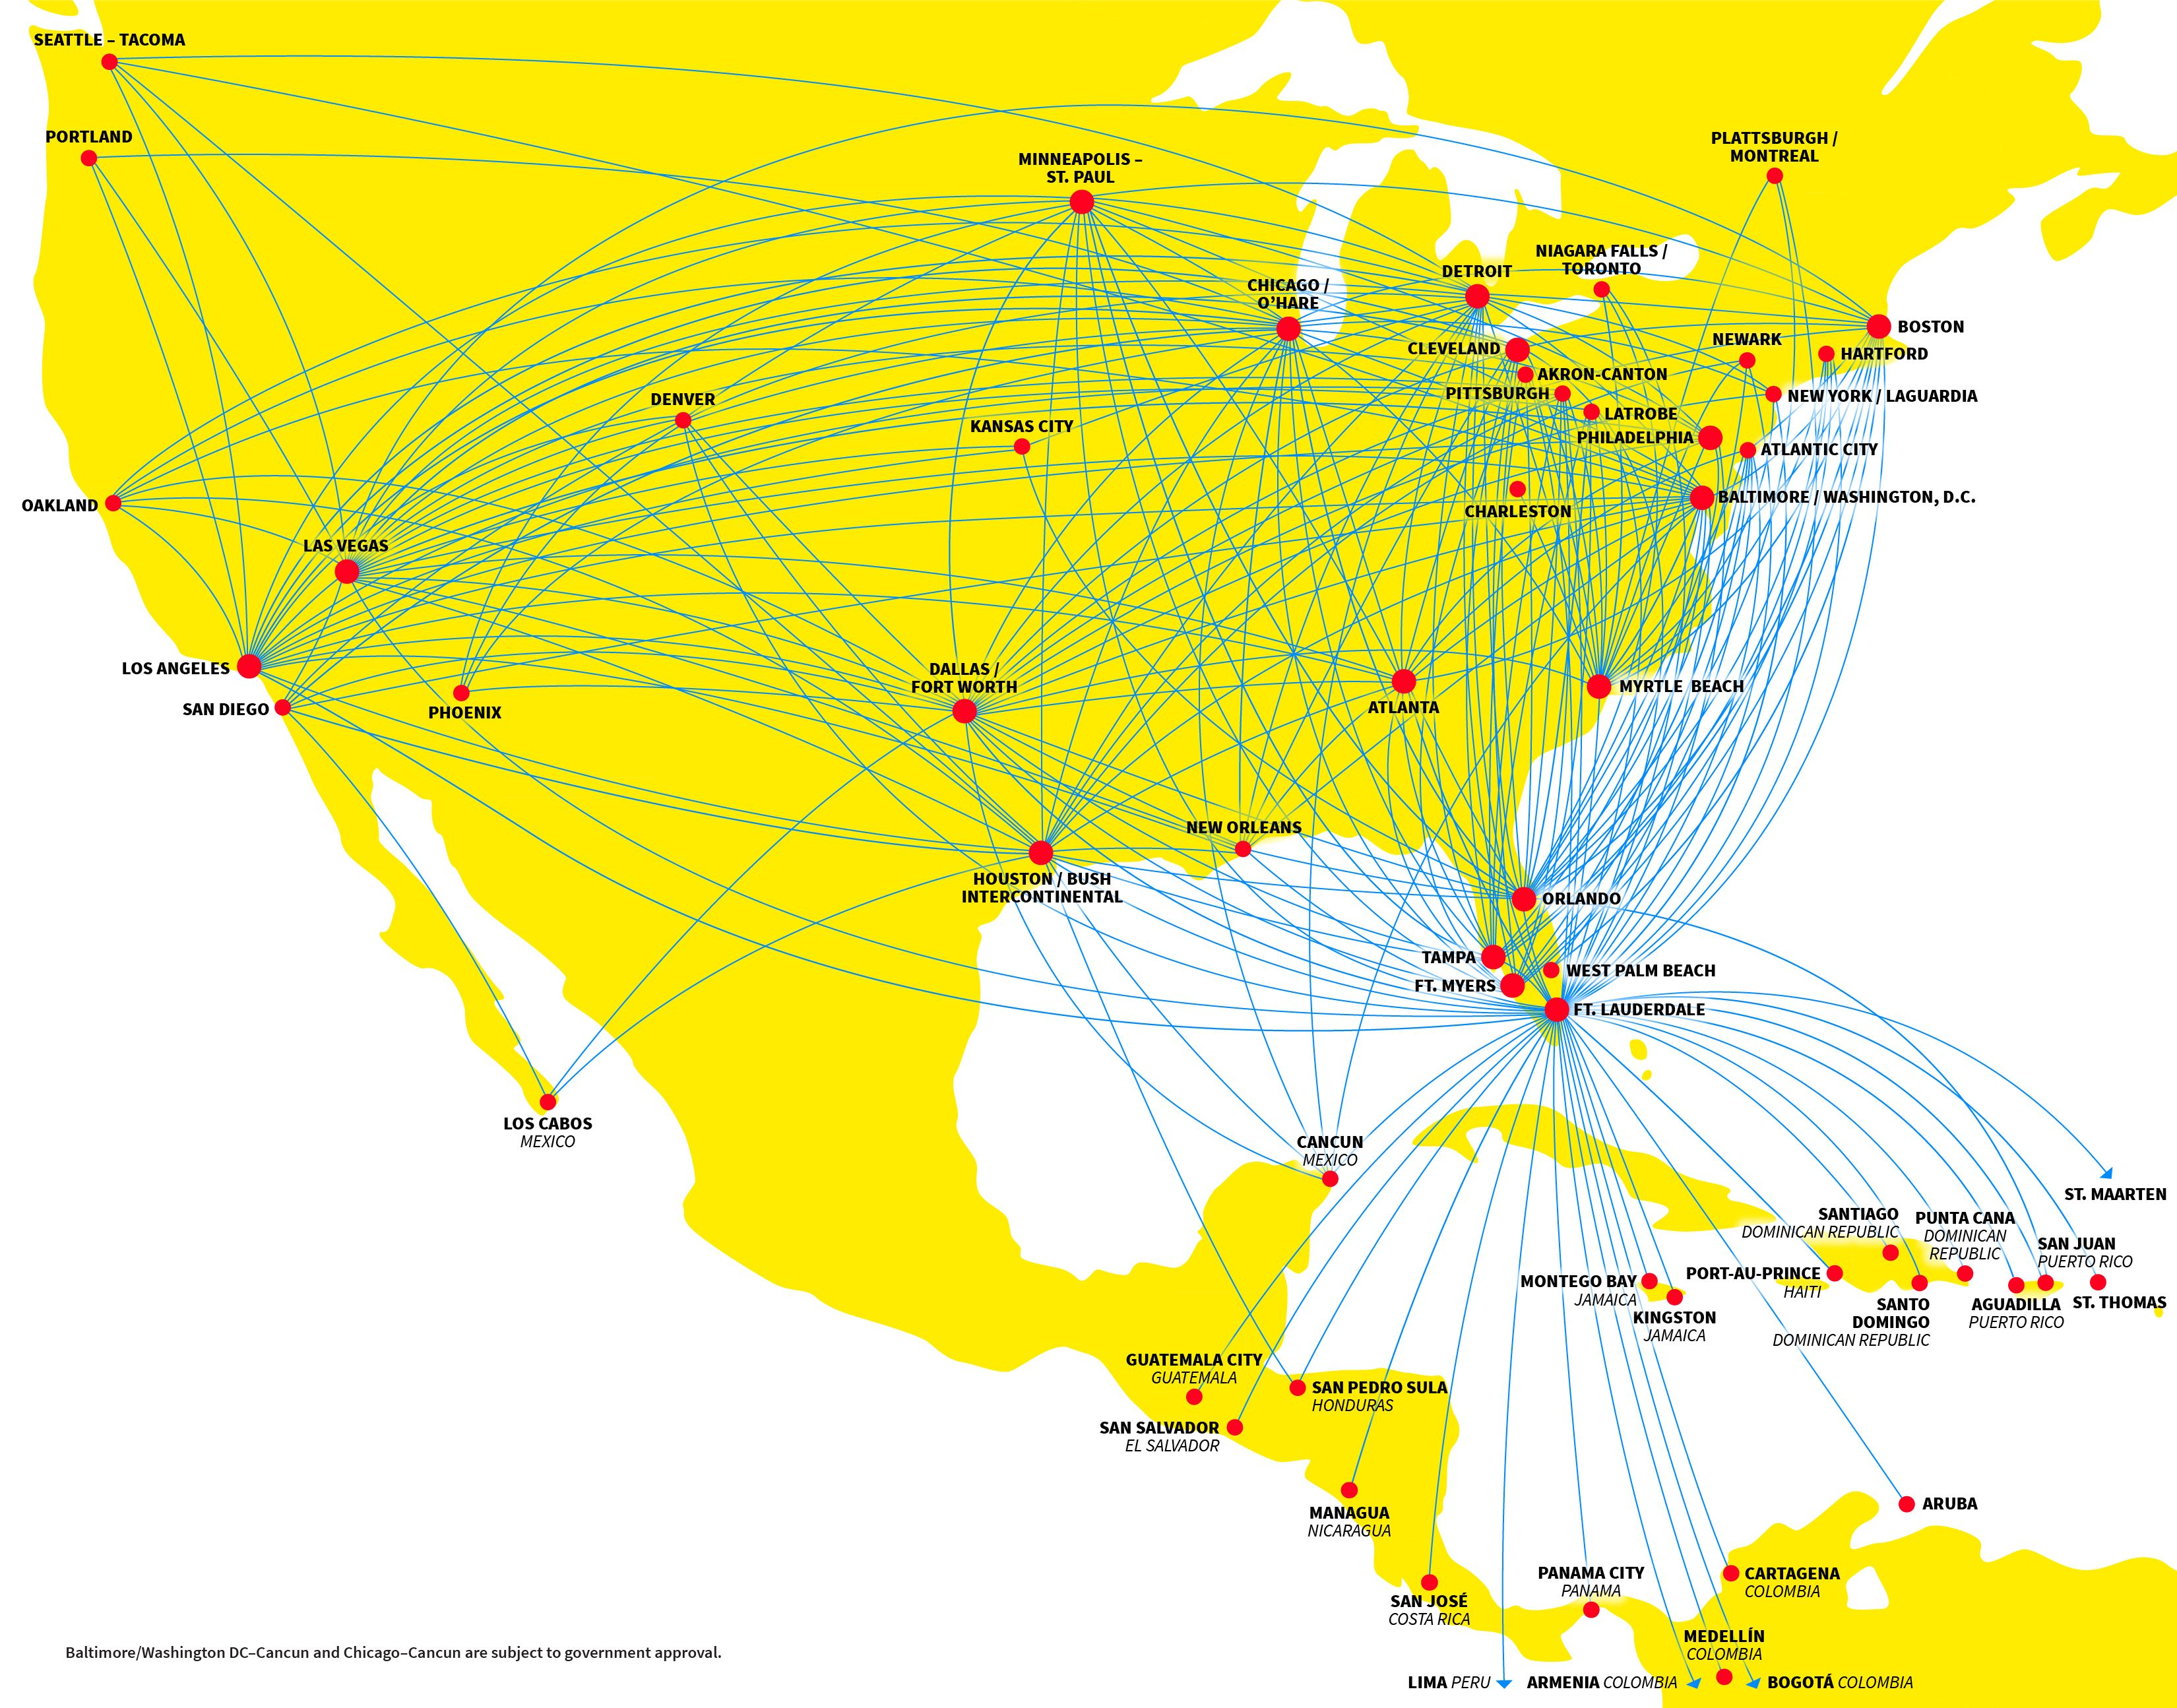 Spirit Airlines Route Map | Spirt airlines, Airline ... on united airlines flight routes 2011, lufthansa airlines route map, united airlines route structure, british airways route map, spirit airlines route map, skywest airlines route map, asia pacific airlines route map, delta caribbean route map, american airlines route map, cayman airways route map, northwest airlines route map, latin america and caribbean map, aa route map, united international route map, delta air lines route map, jetblue caribbean route map, allegiant airlines route map, continental airlines route map, united route map europe, united airlines international routes,